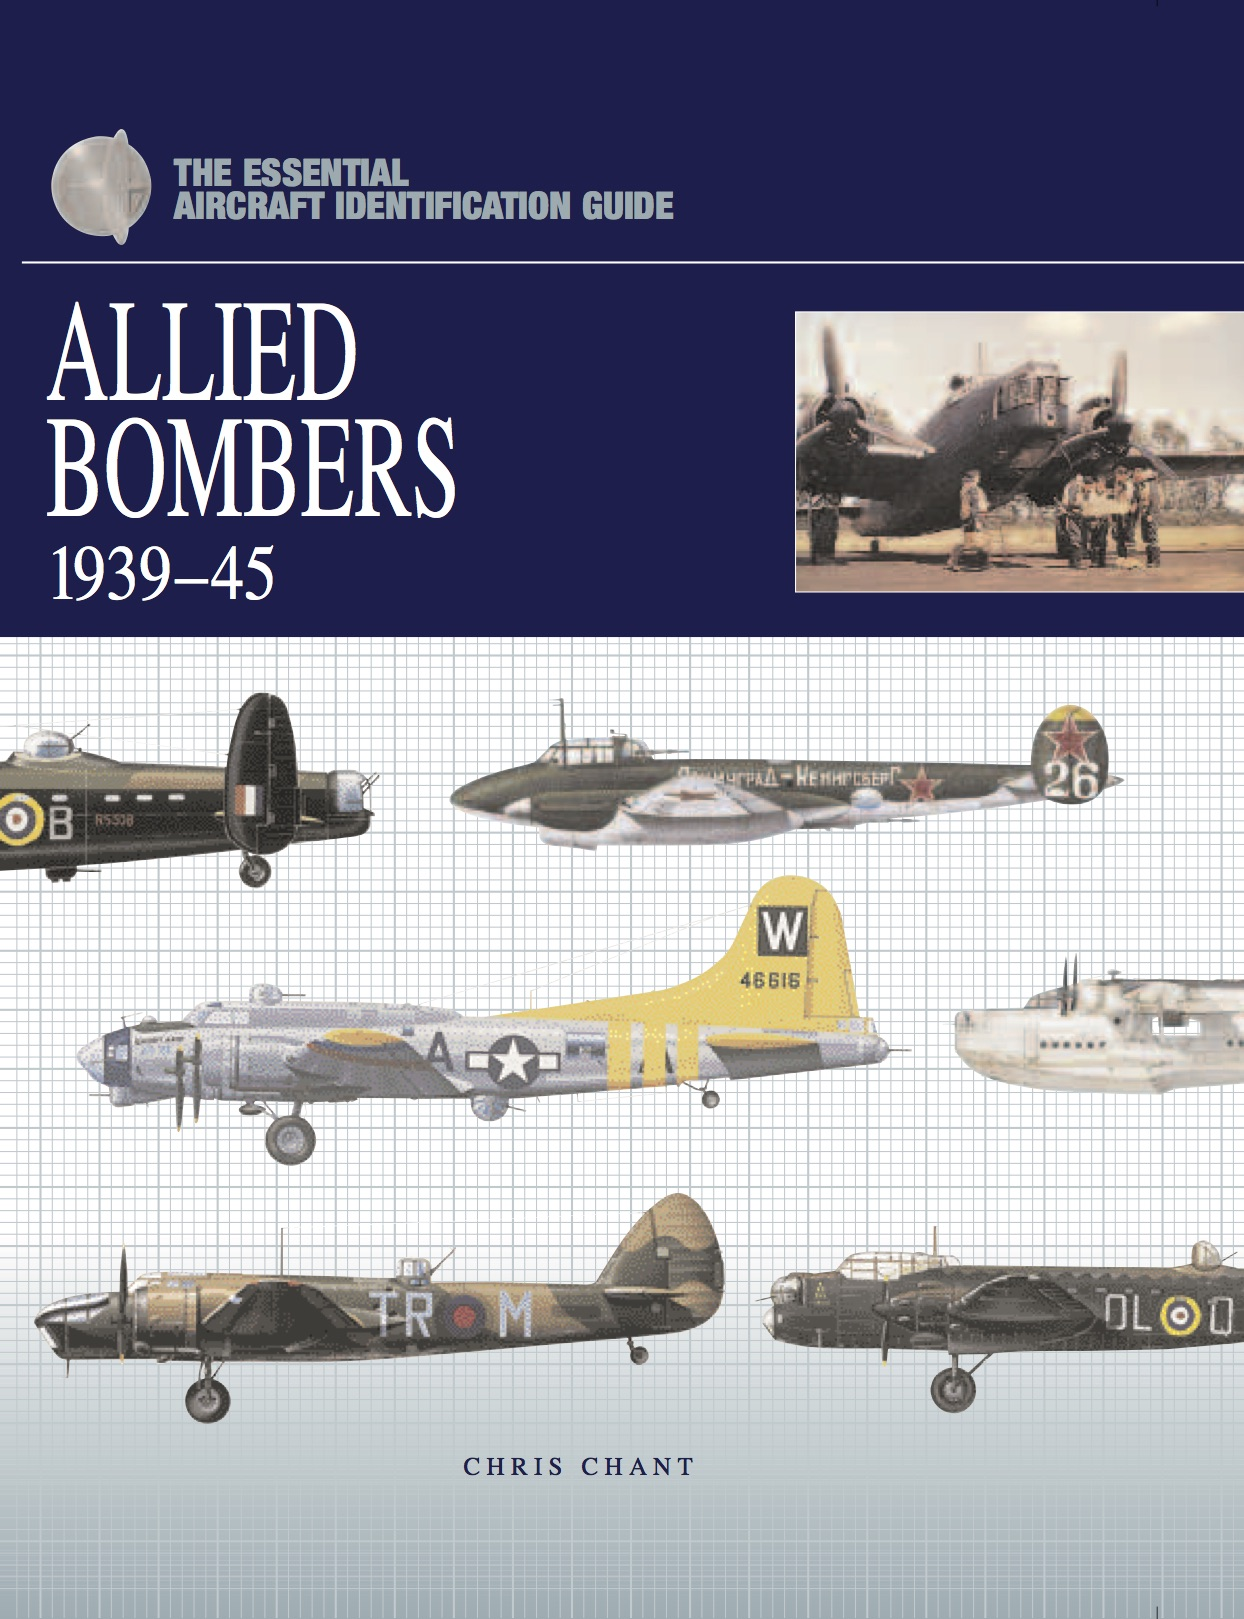 Allied Bombers 1939-45: The Essential Aircraft Identification Guide